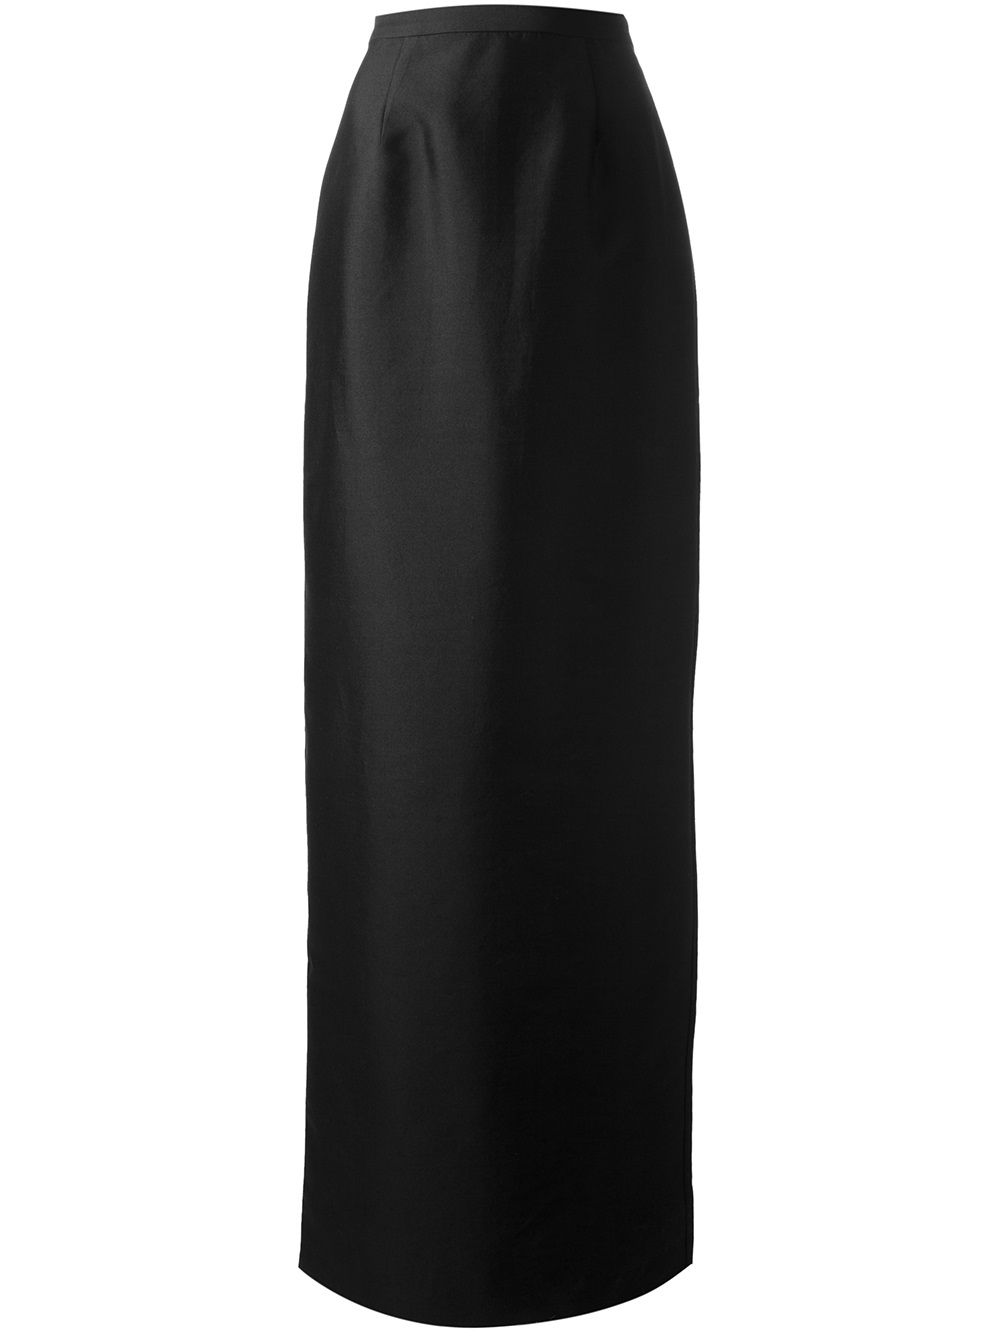 Raoul Long Pencil Skirt in Black | Lyst